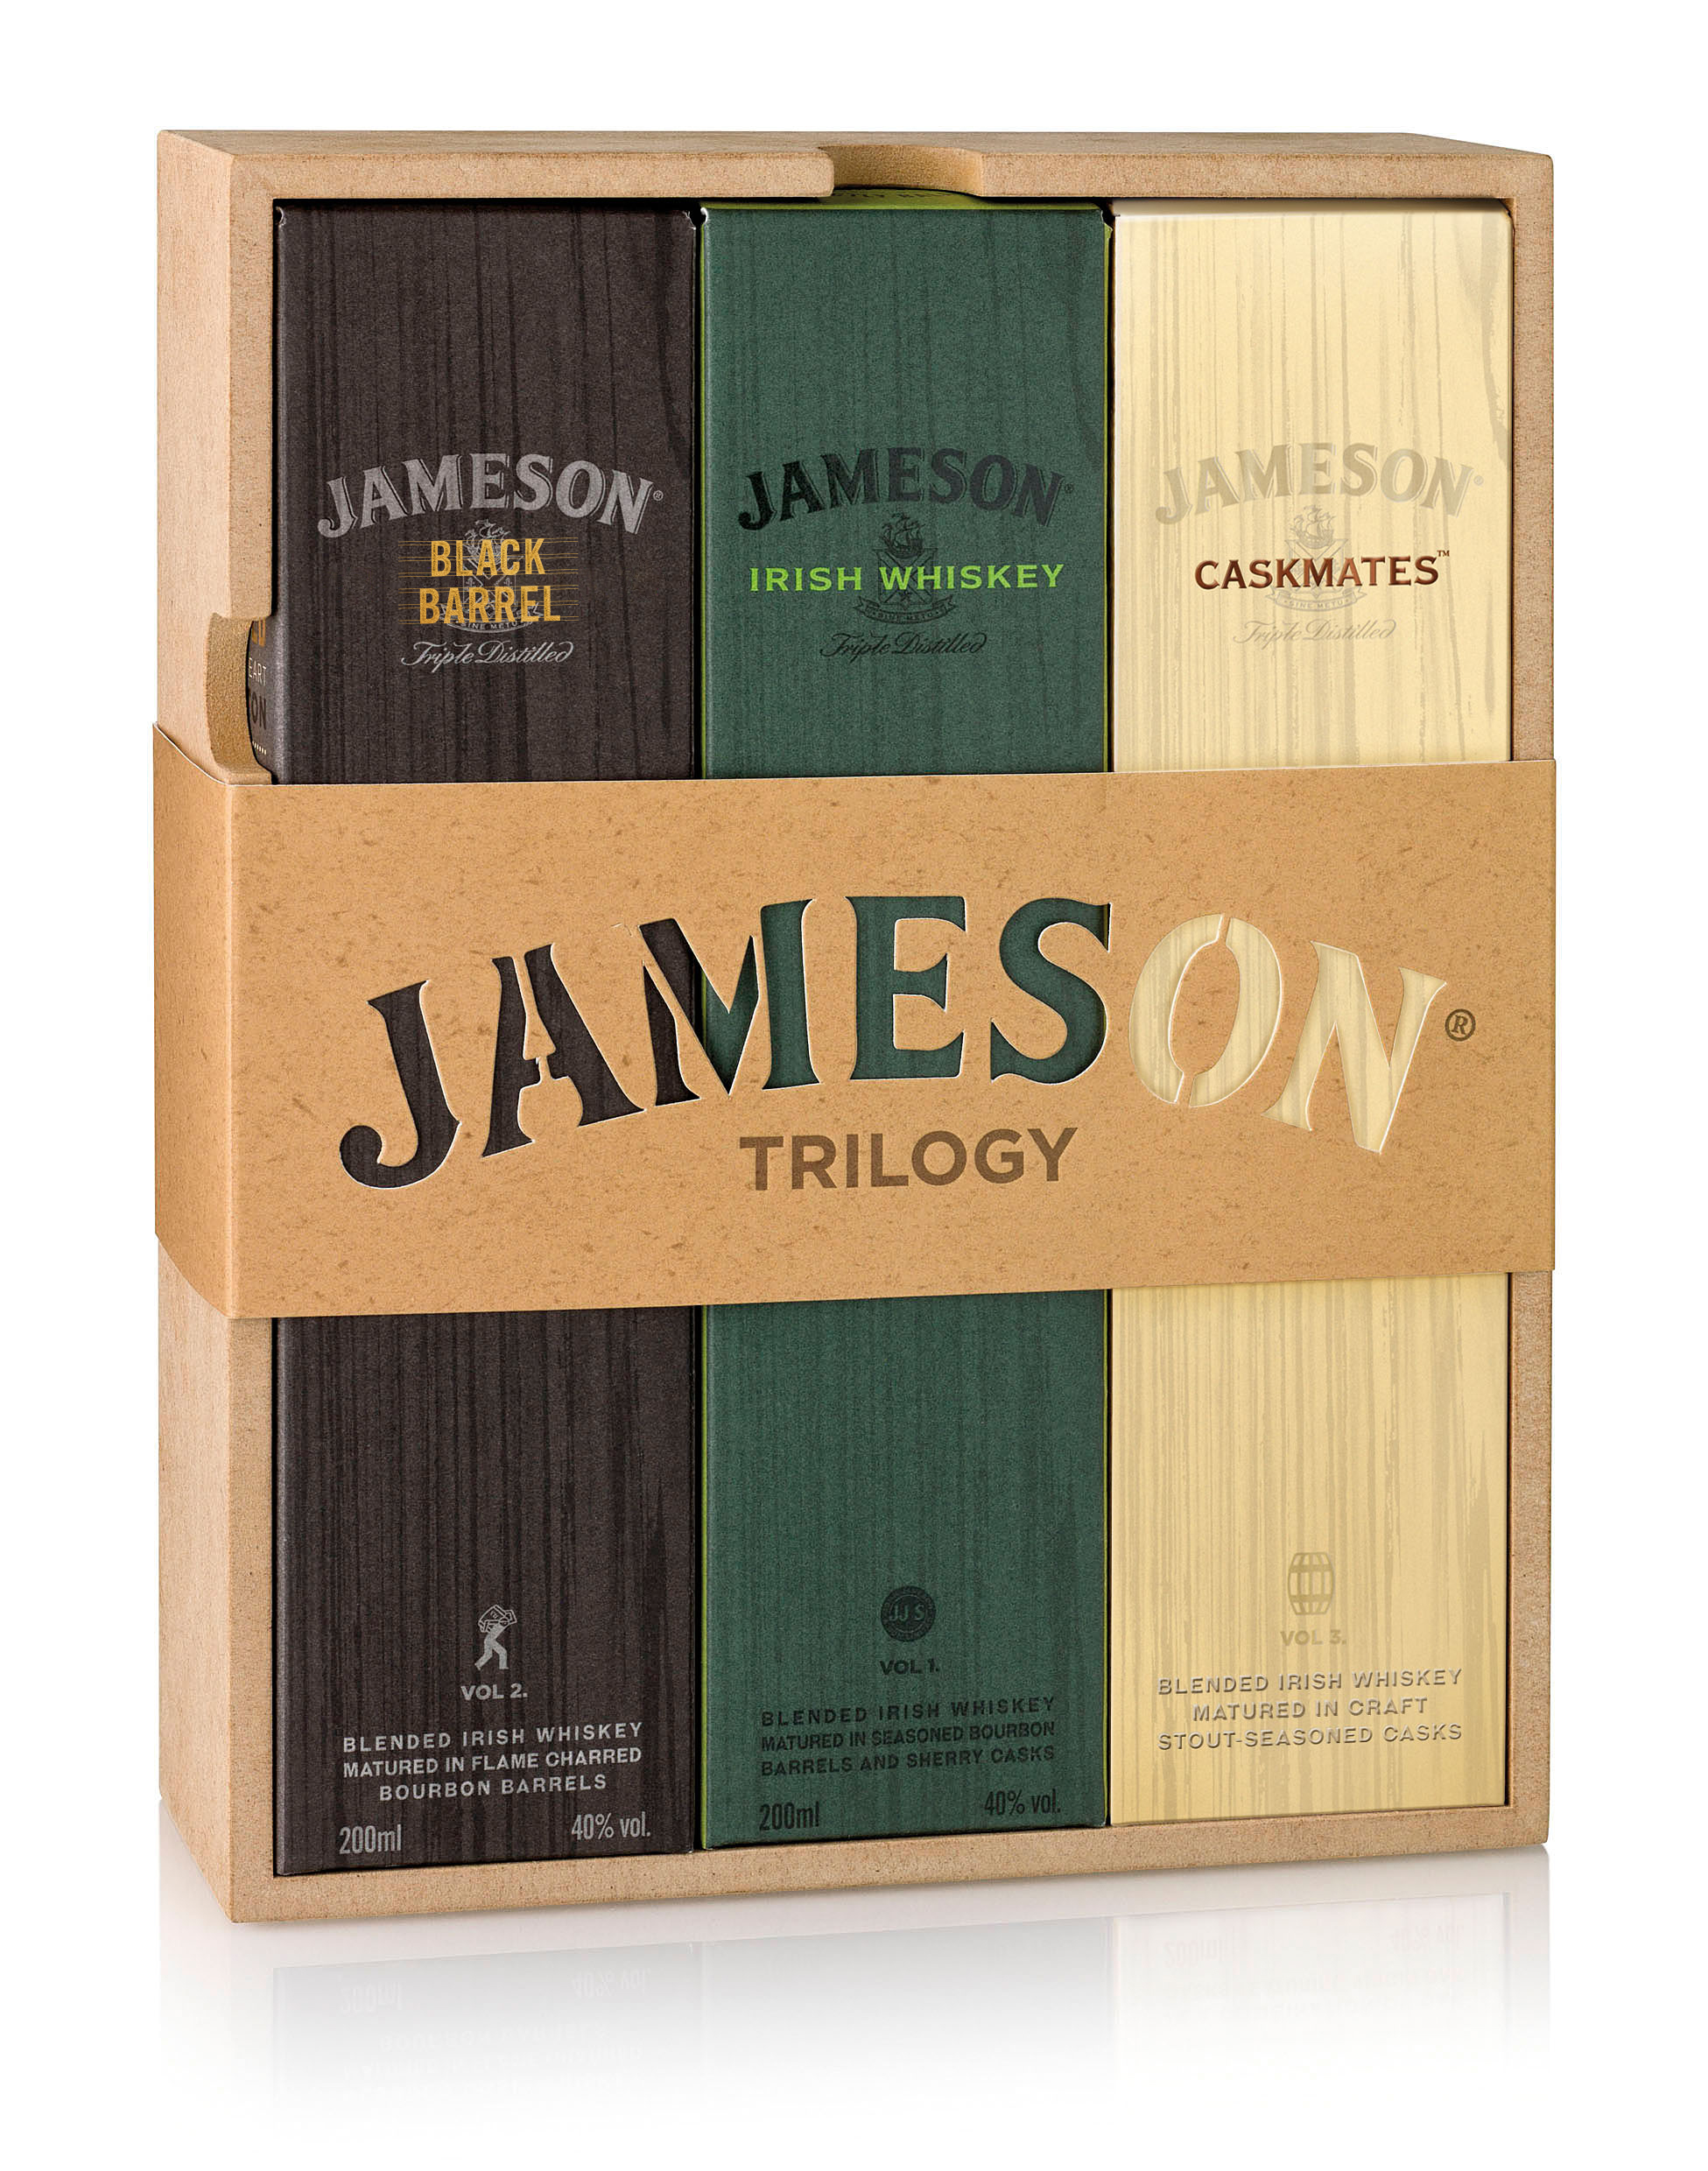 jameson-trilogy_3_pack_flat-black-barrel-edit